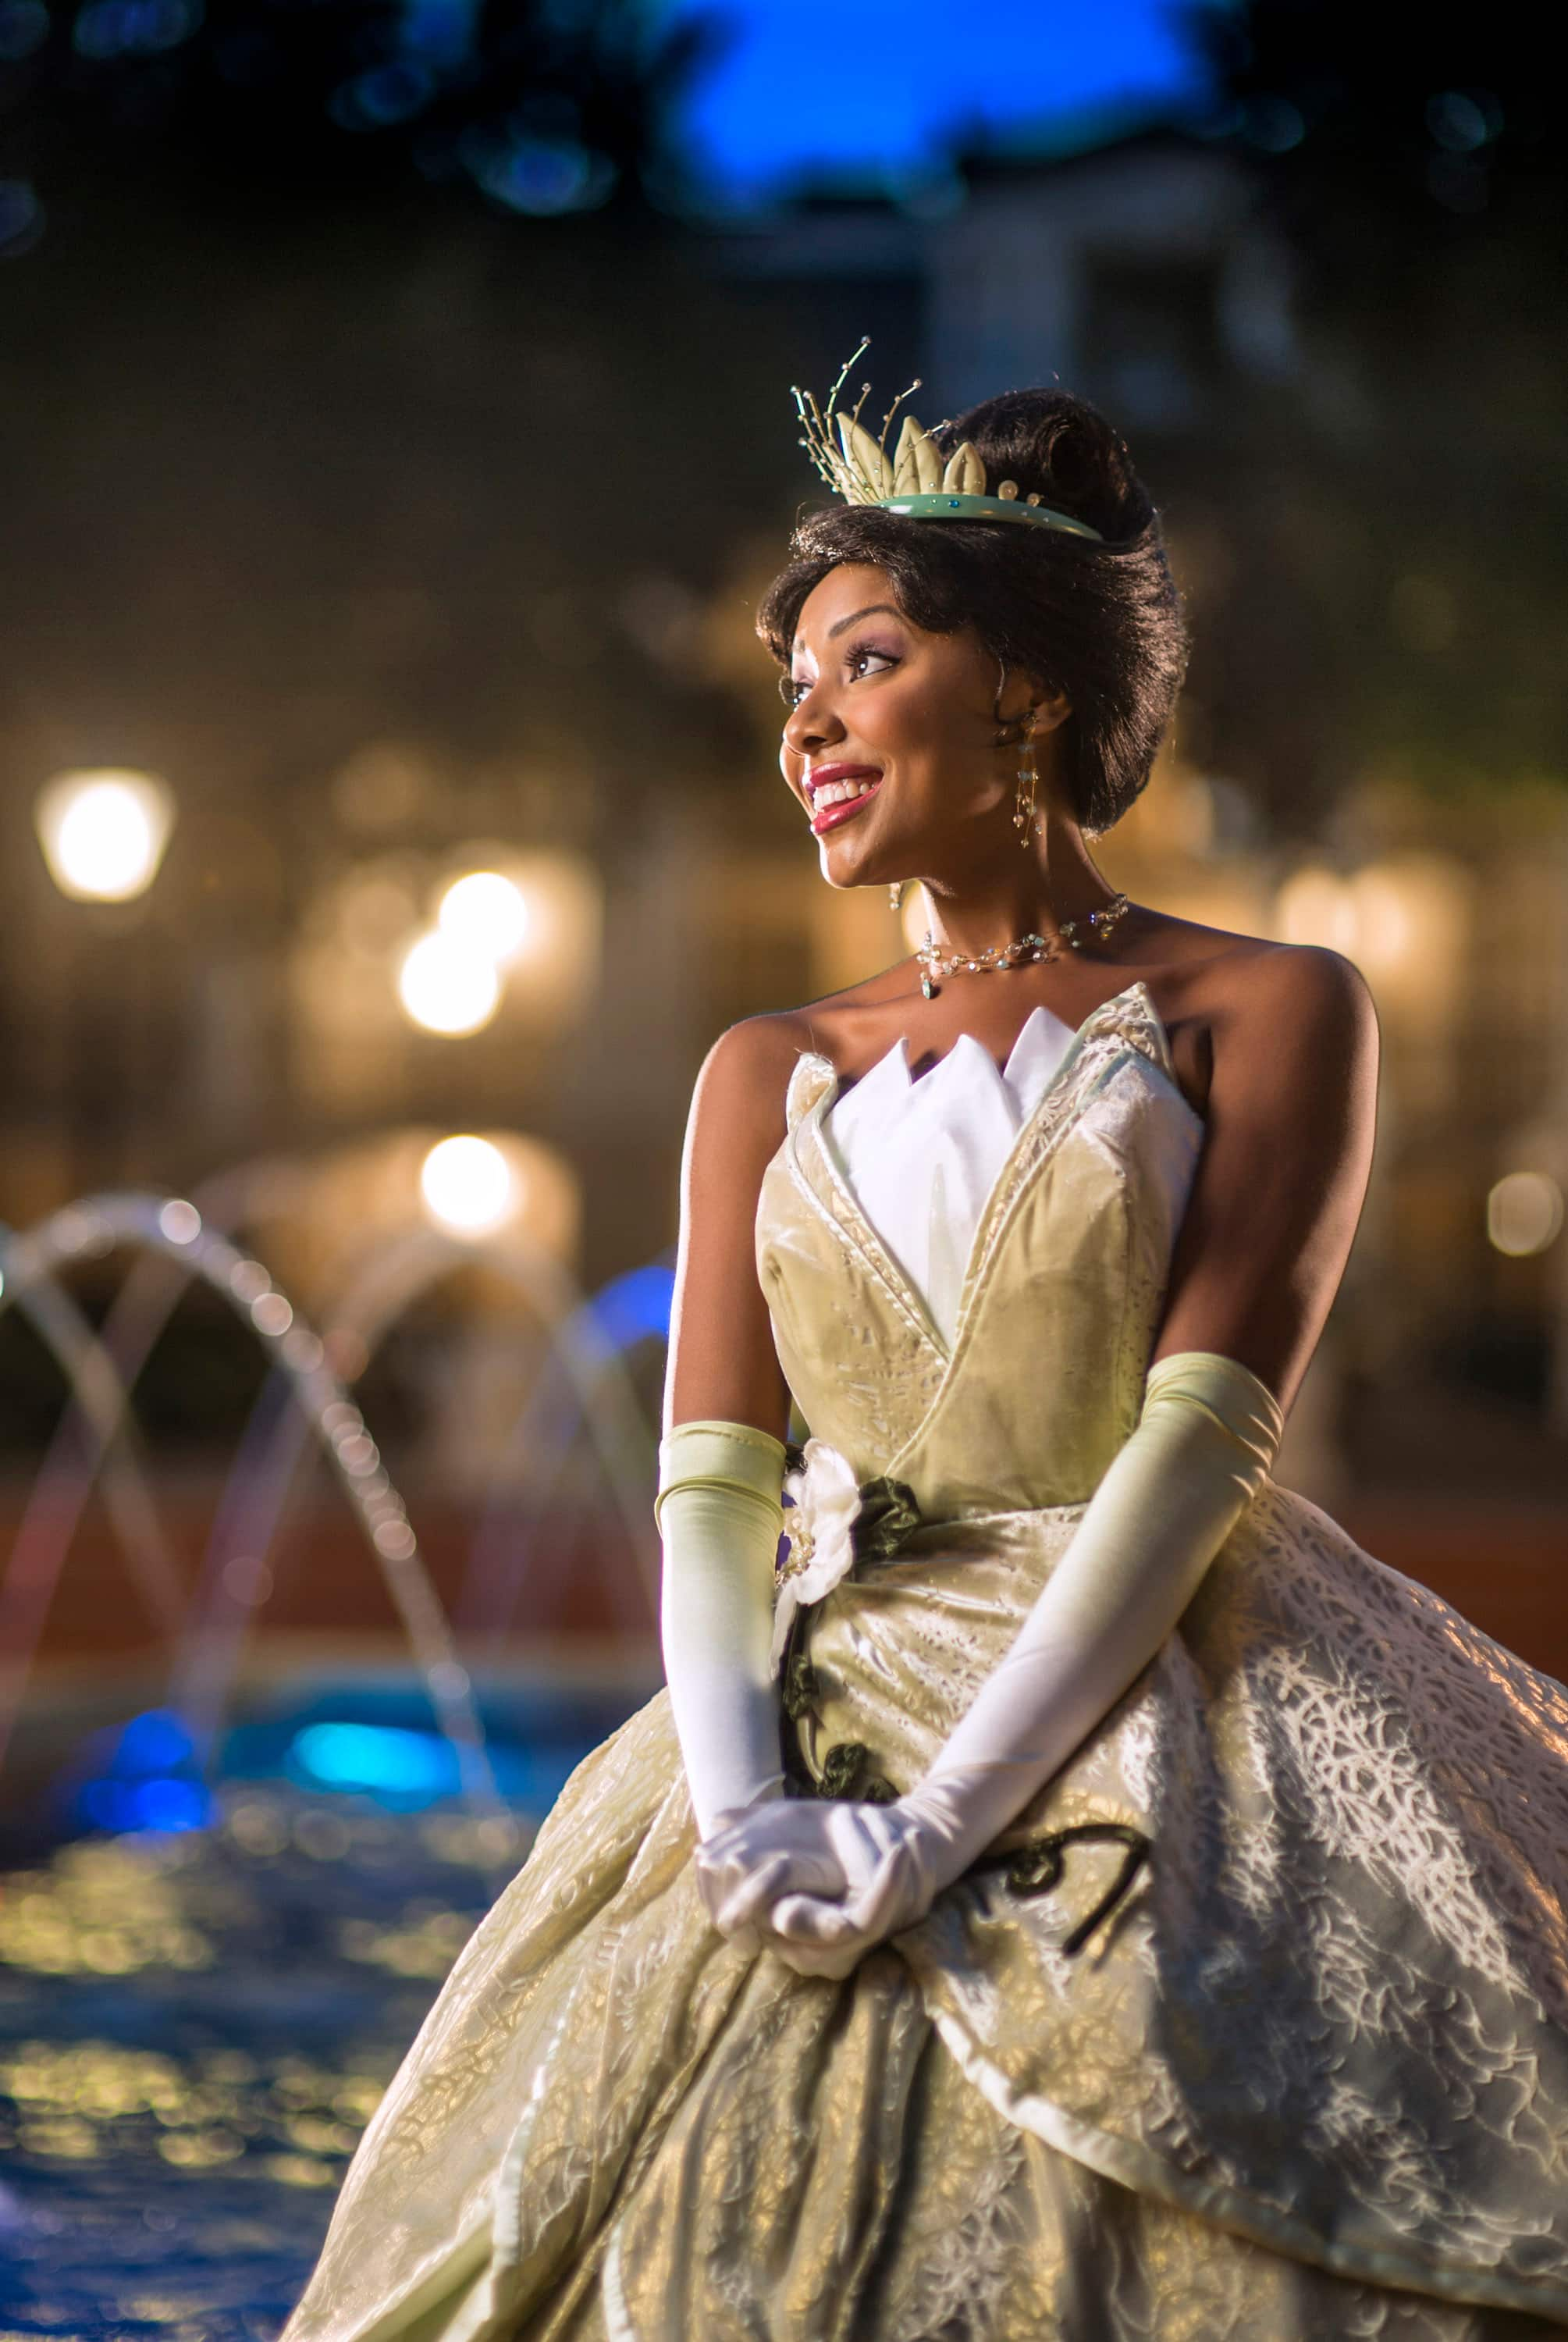 Special Images Of Tiana From The Princess The Frog Disney